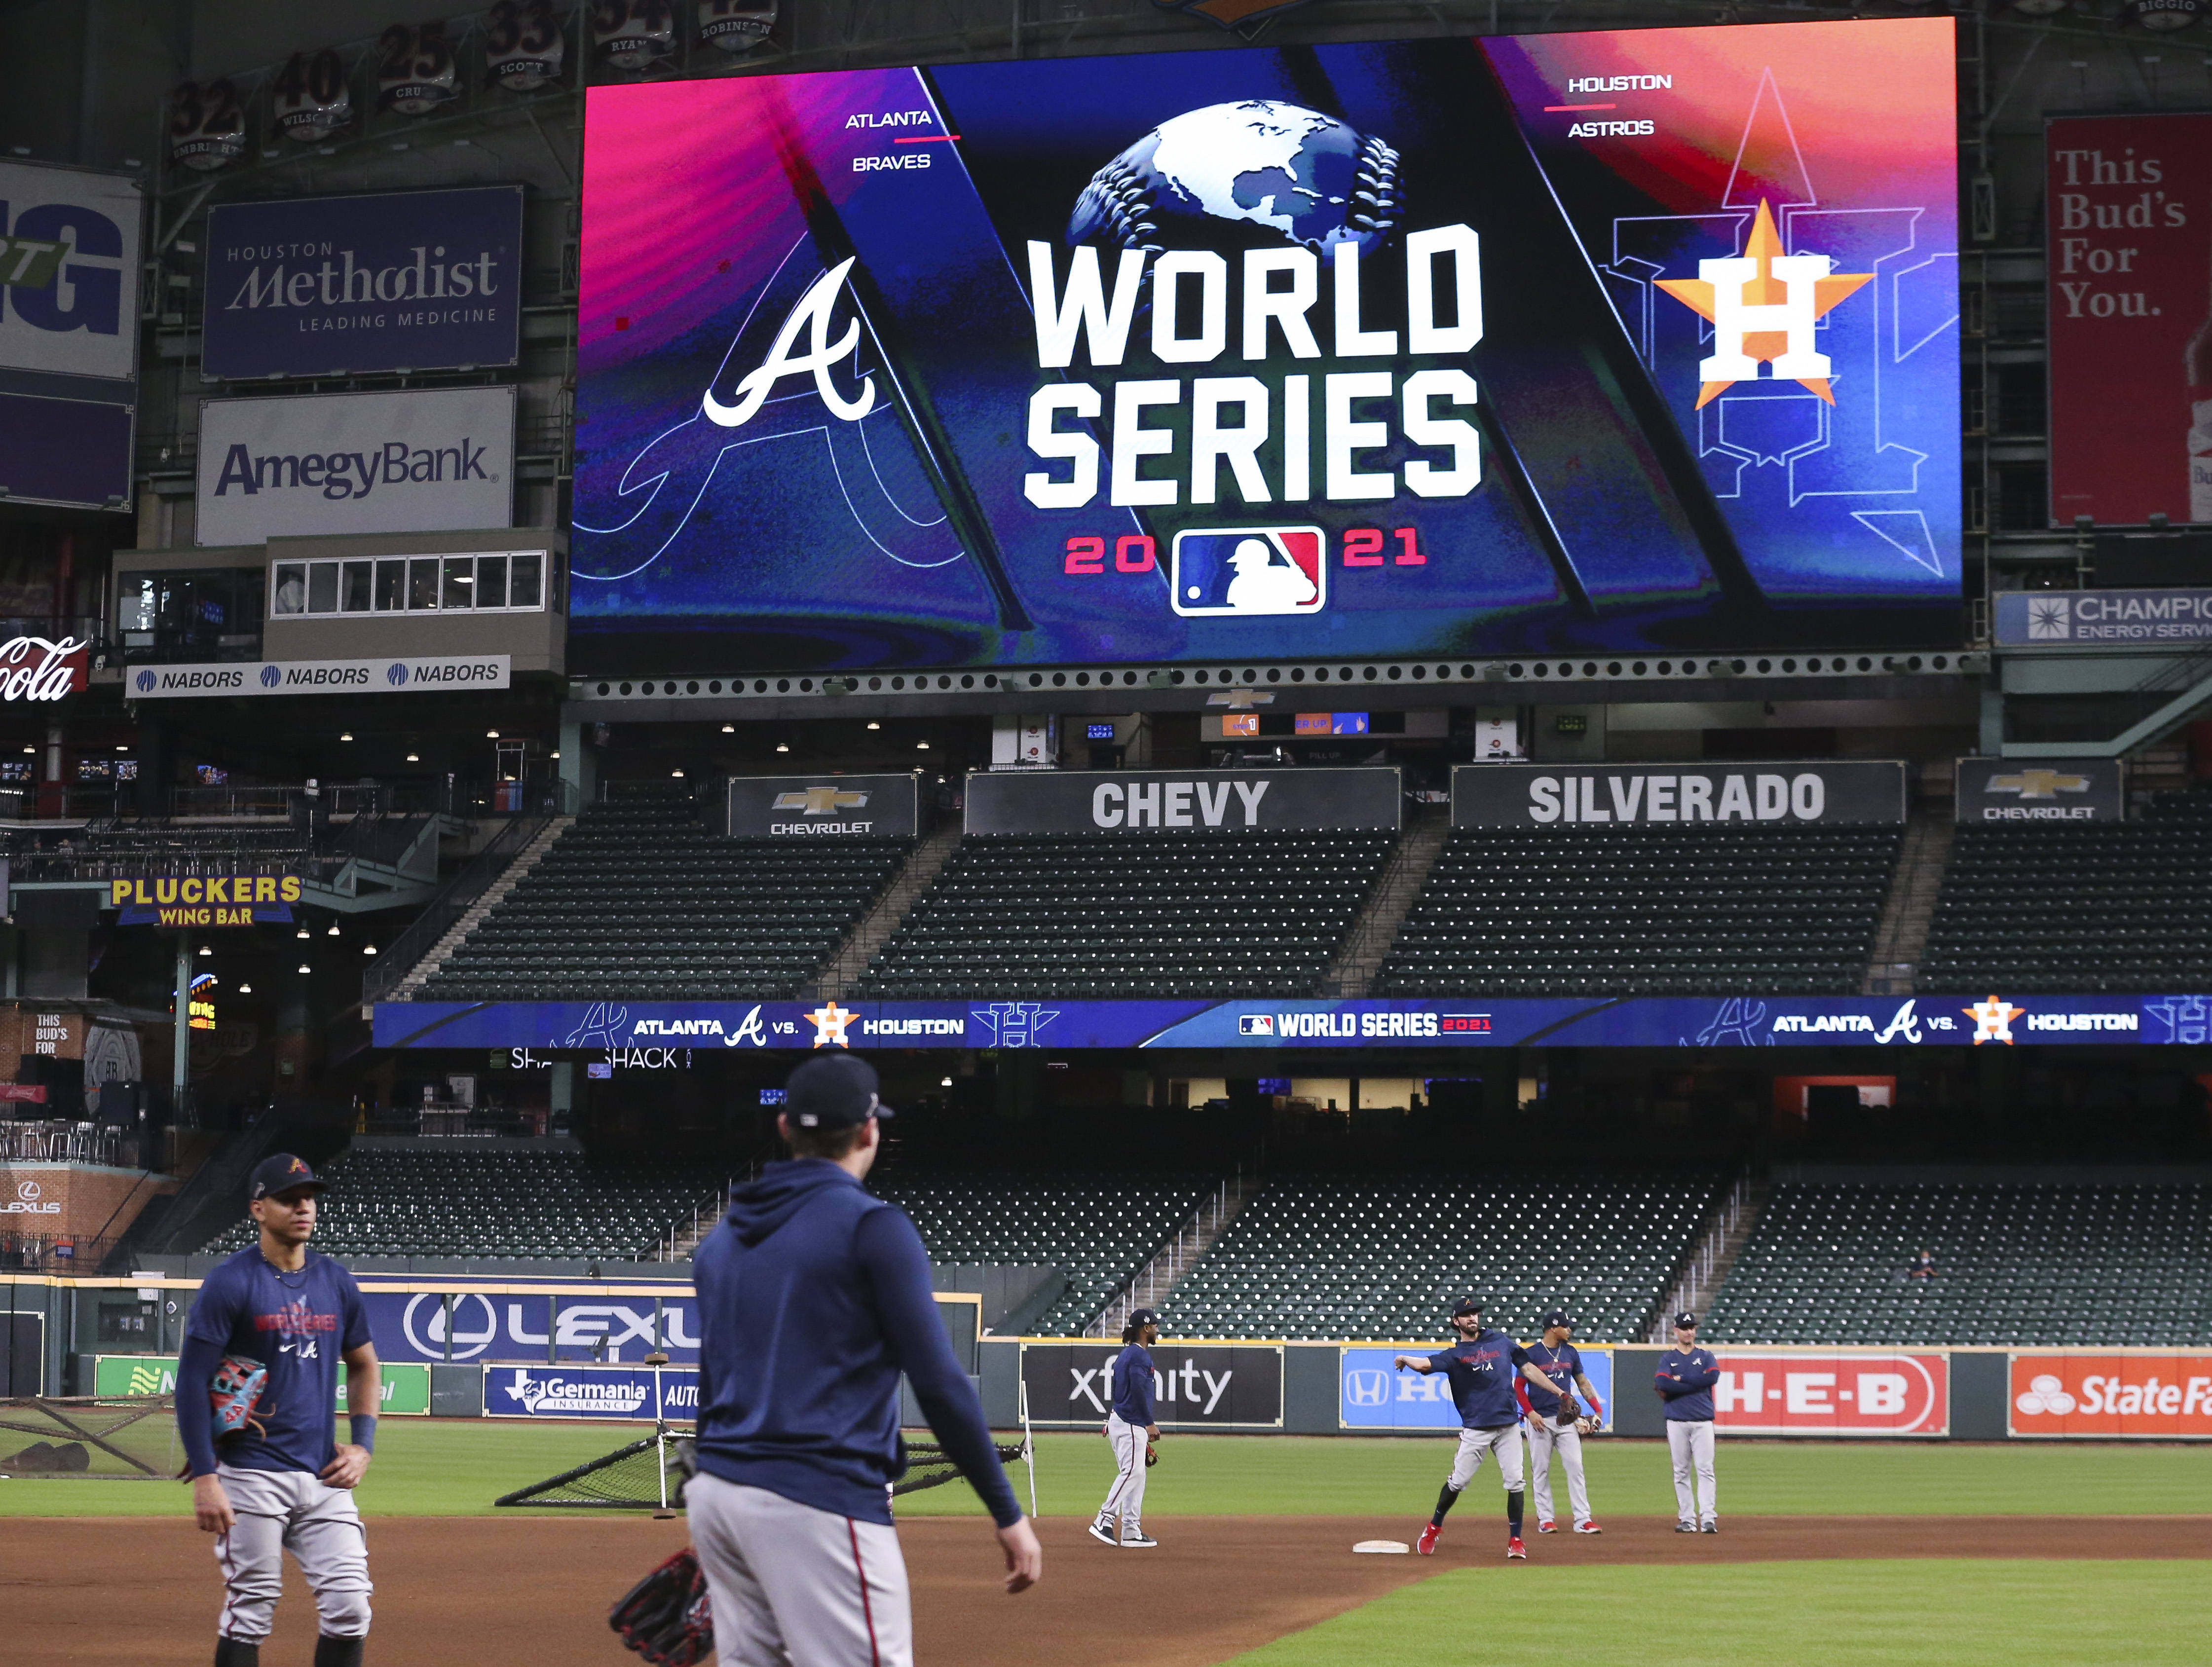 Atlanta Braves players practice during workouts before Game 1 of the World Series between the Houston Astros and the Atlanta Braves at Minute Maid Park